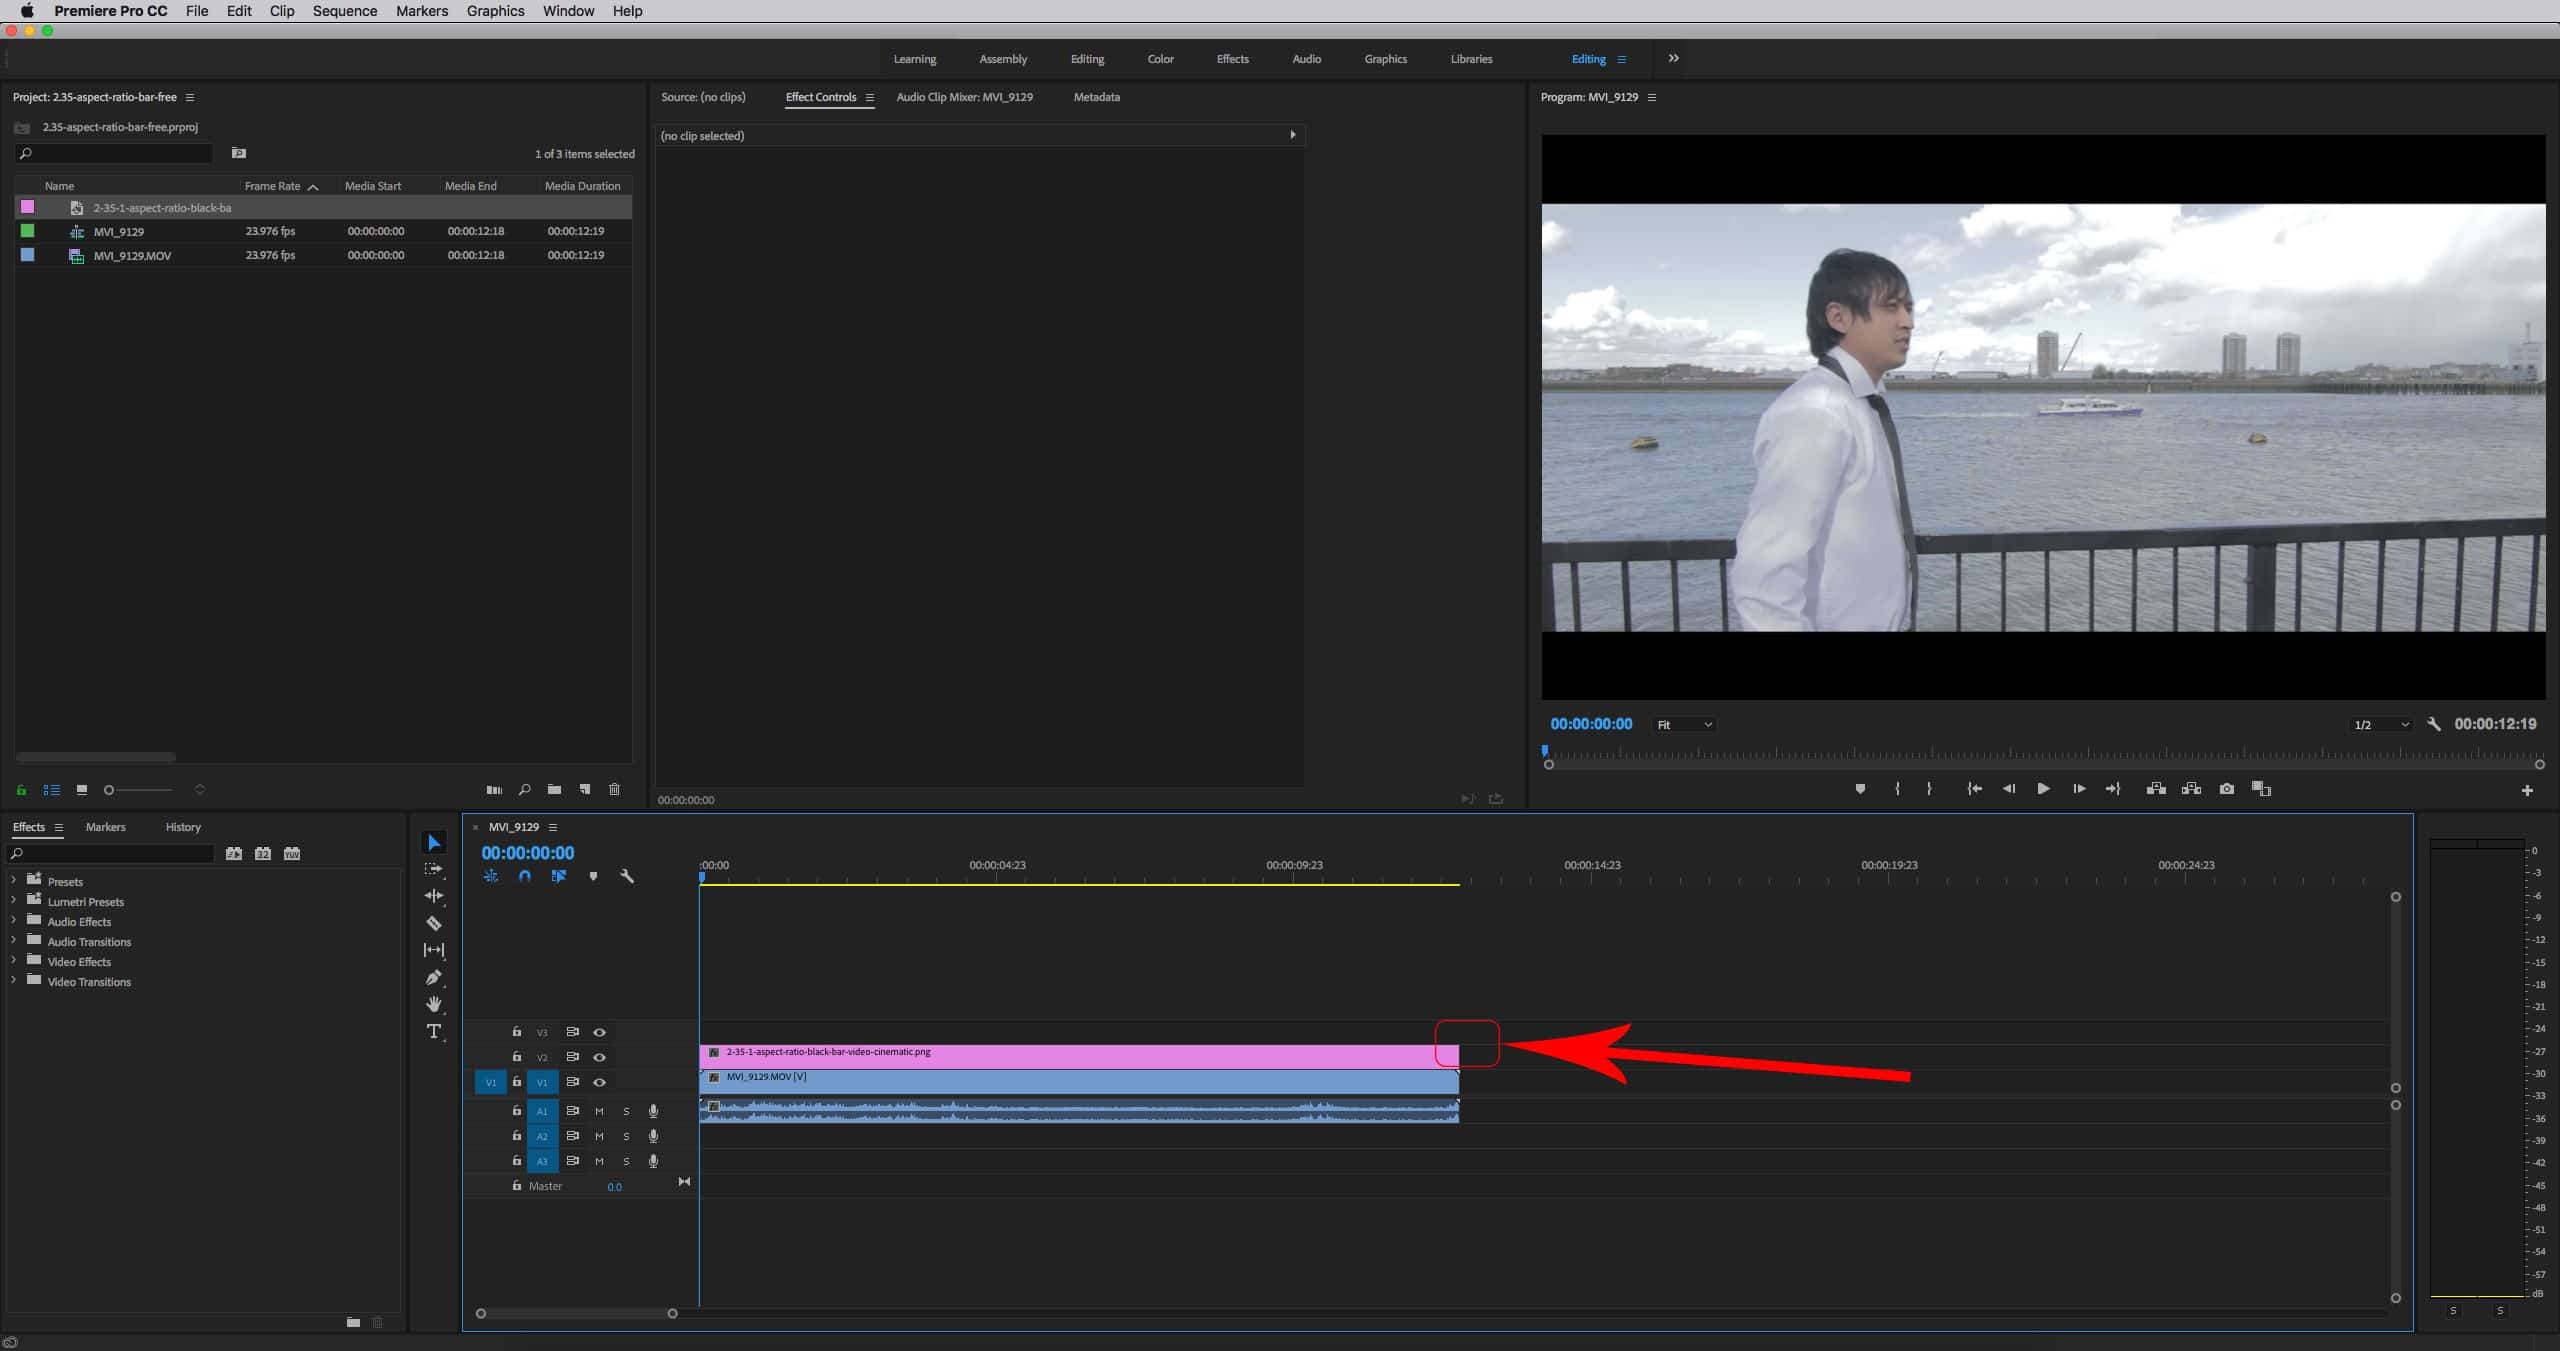 FREE 2 35:1 Aspect Ratio Black Bar For Adobe Premiere Pro, After